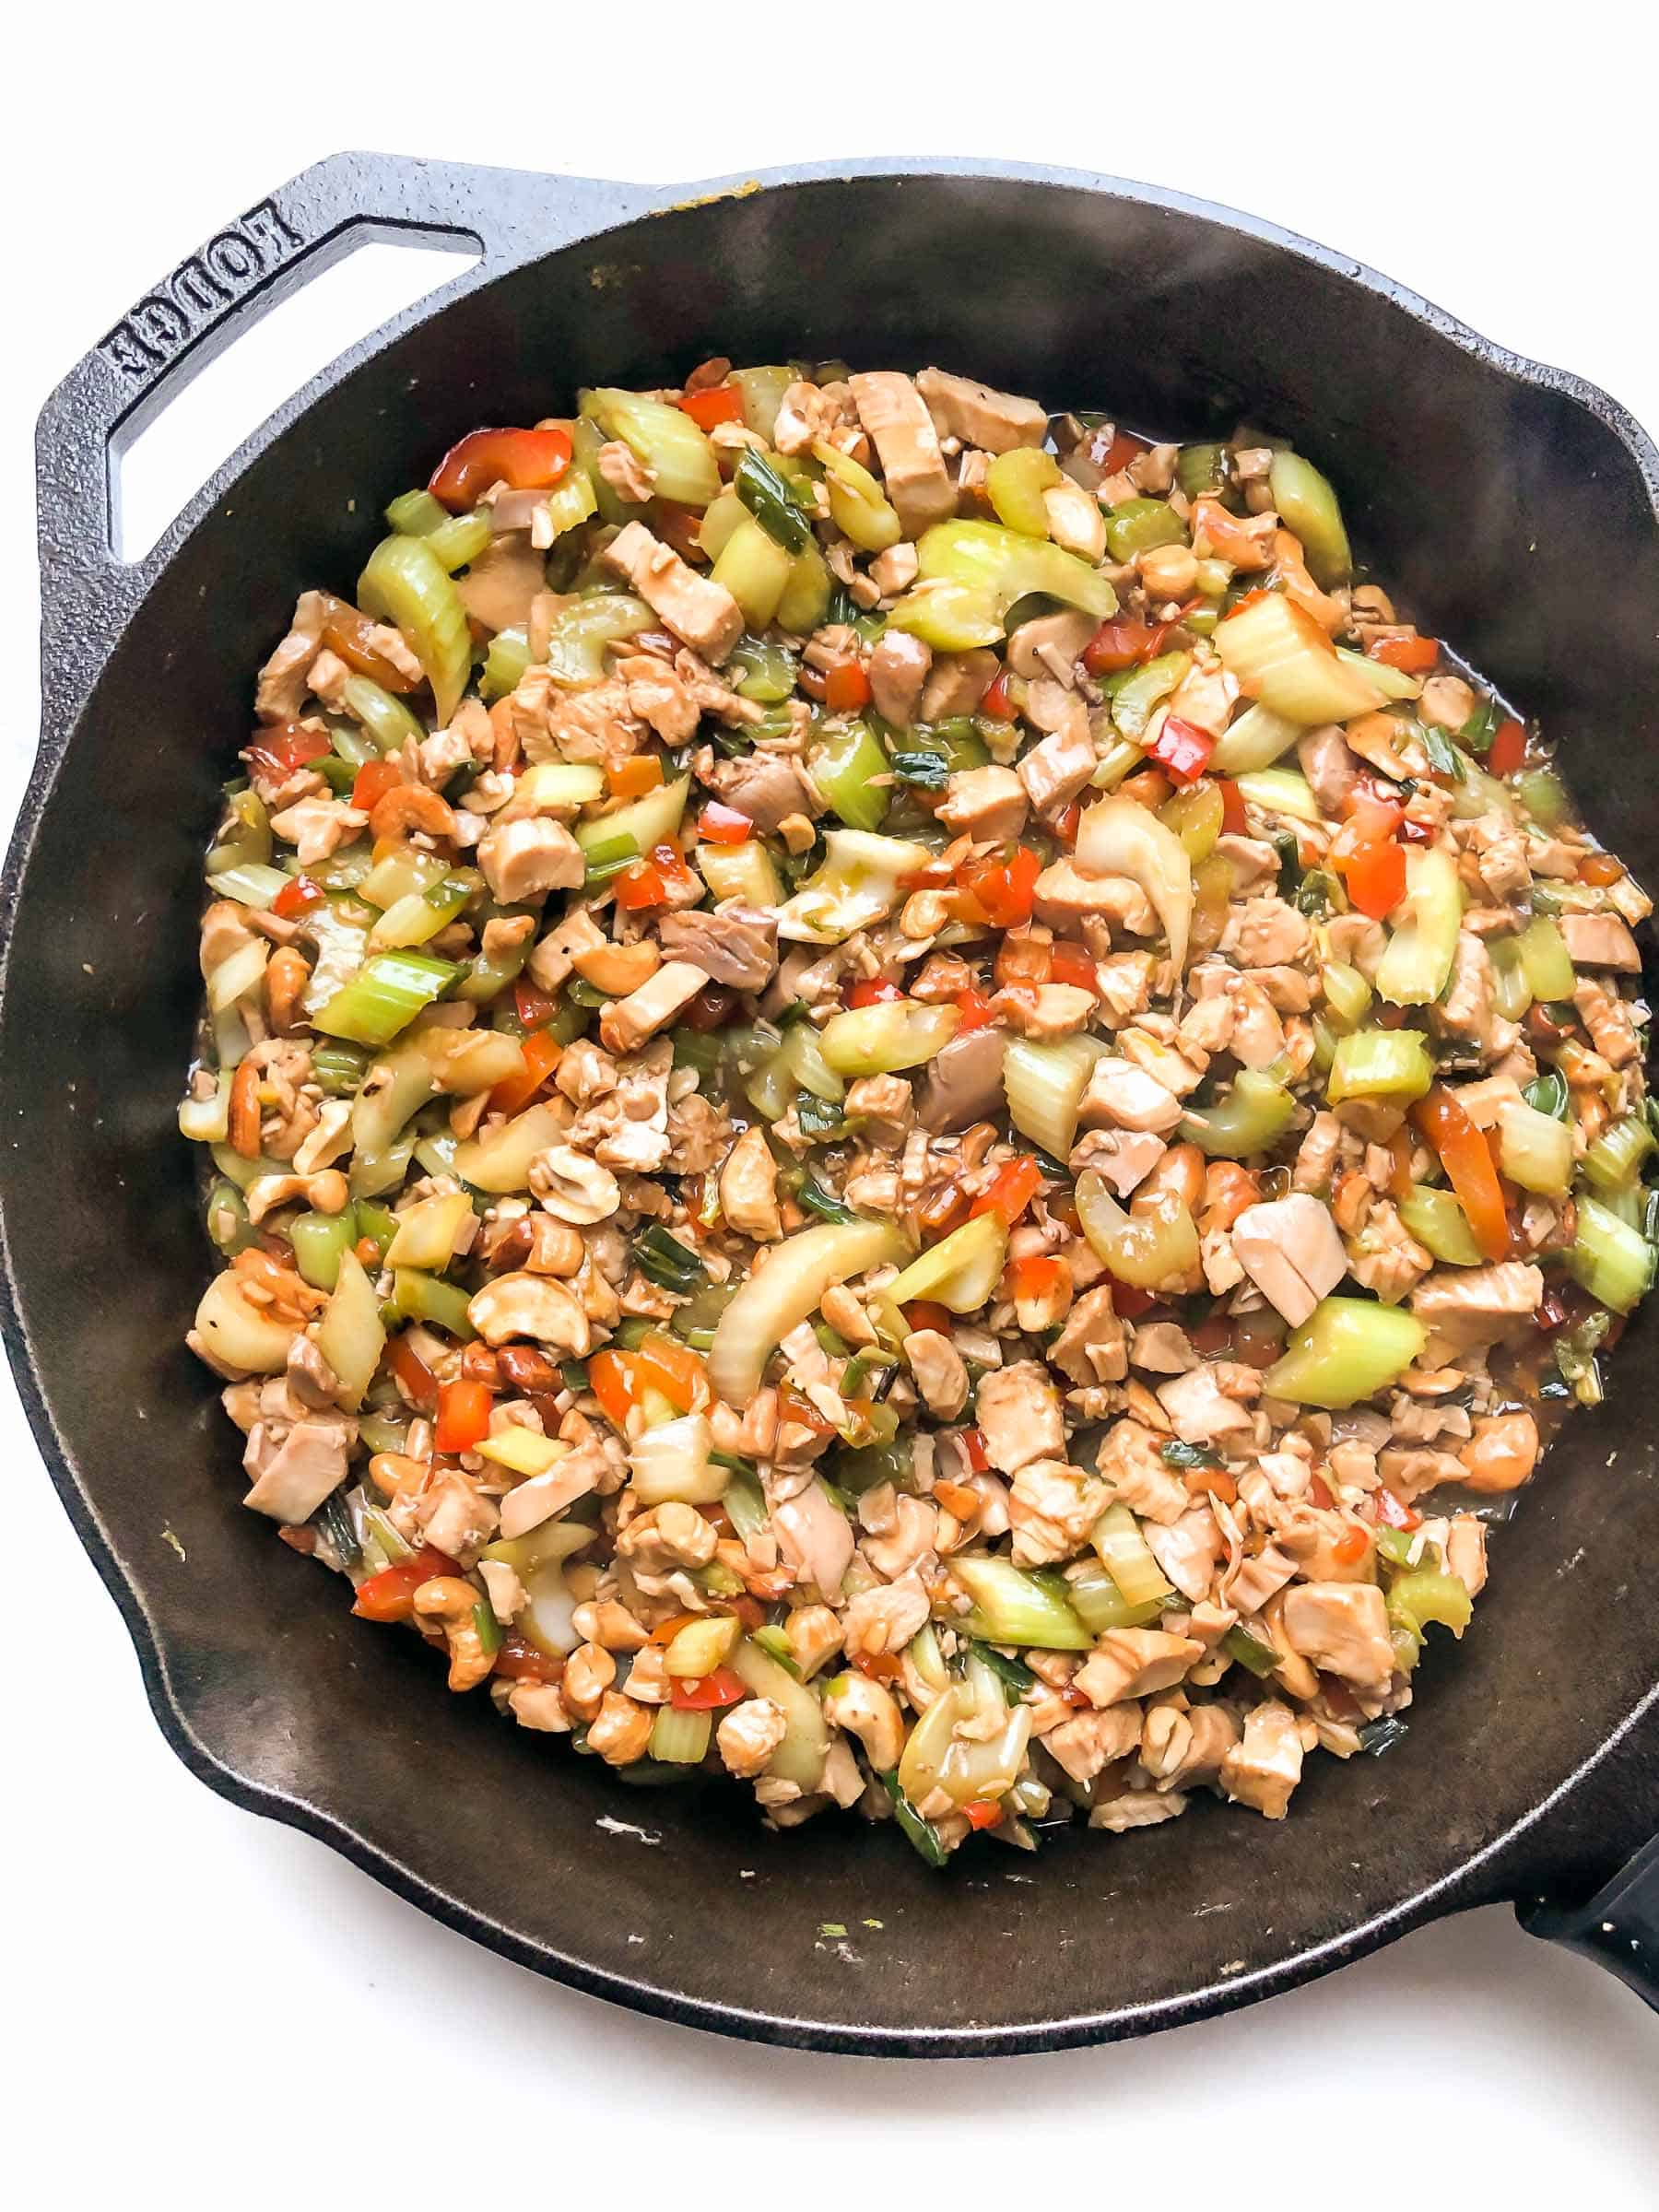 CHICKEN AND CELERY STIR FRY IN A CAST IRON SKILLET